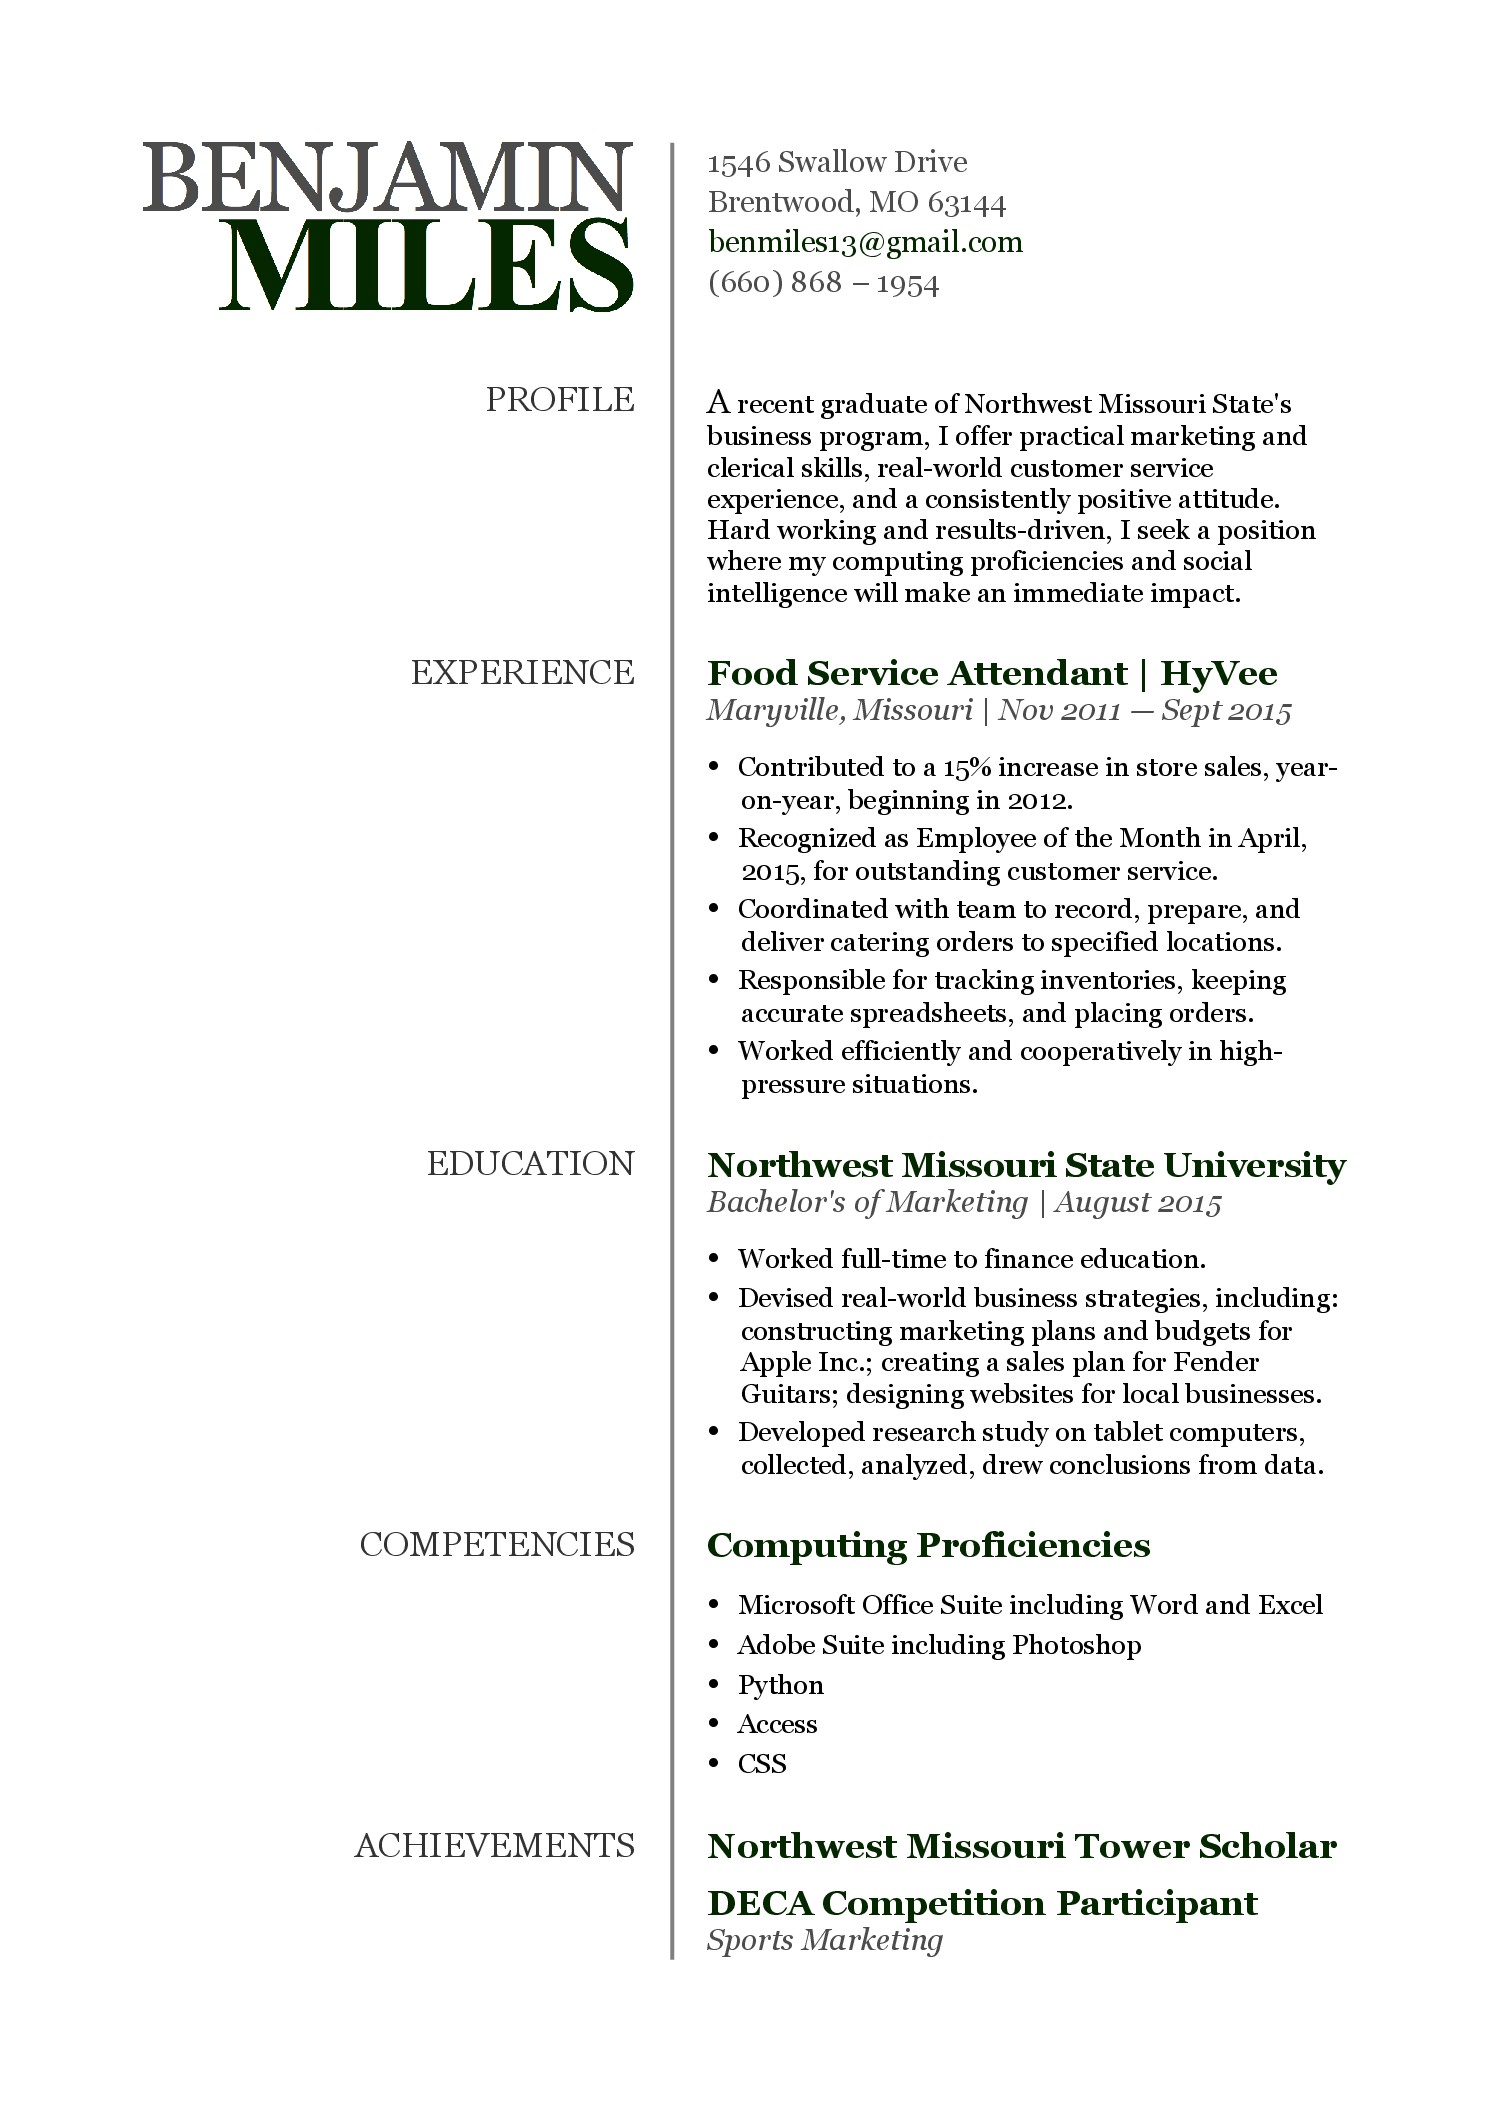 Email Cover Letters Tire Installer Cover Letter Web Design Resume Sample  How To Create A Great